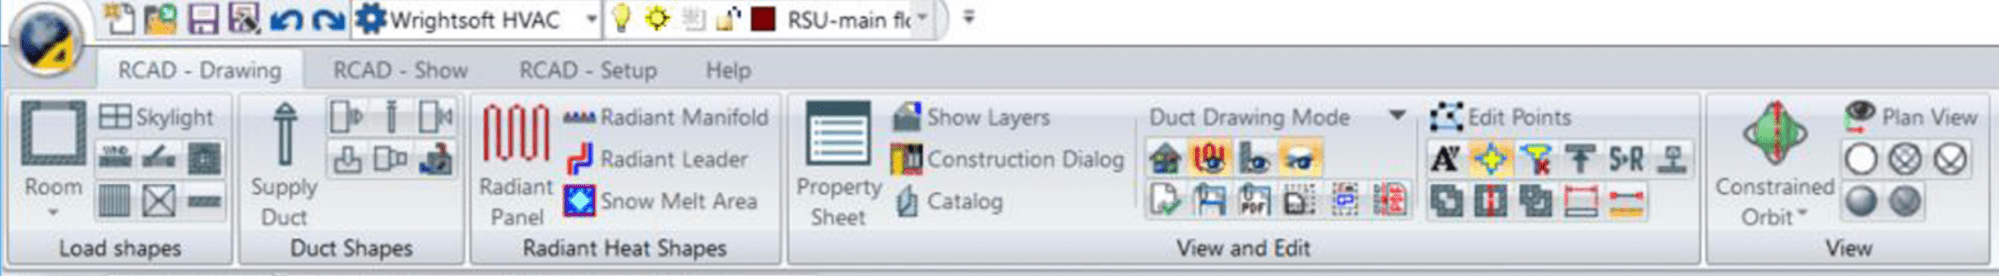 hight resolution of right cad fully supports legacy dwg drawings not only does right cad import and export to rsu but it also reads and writes dwg files in